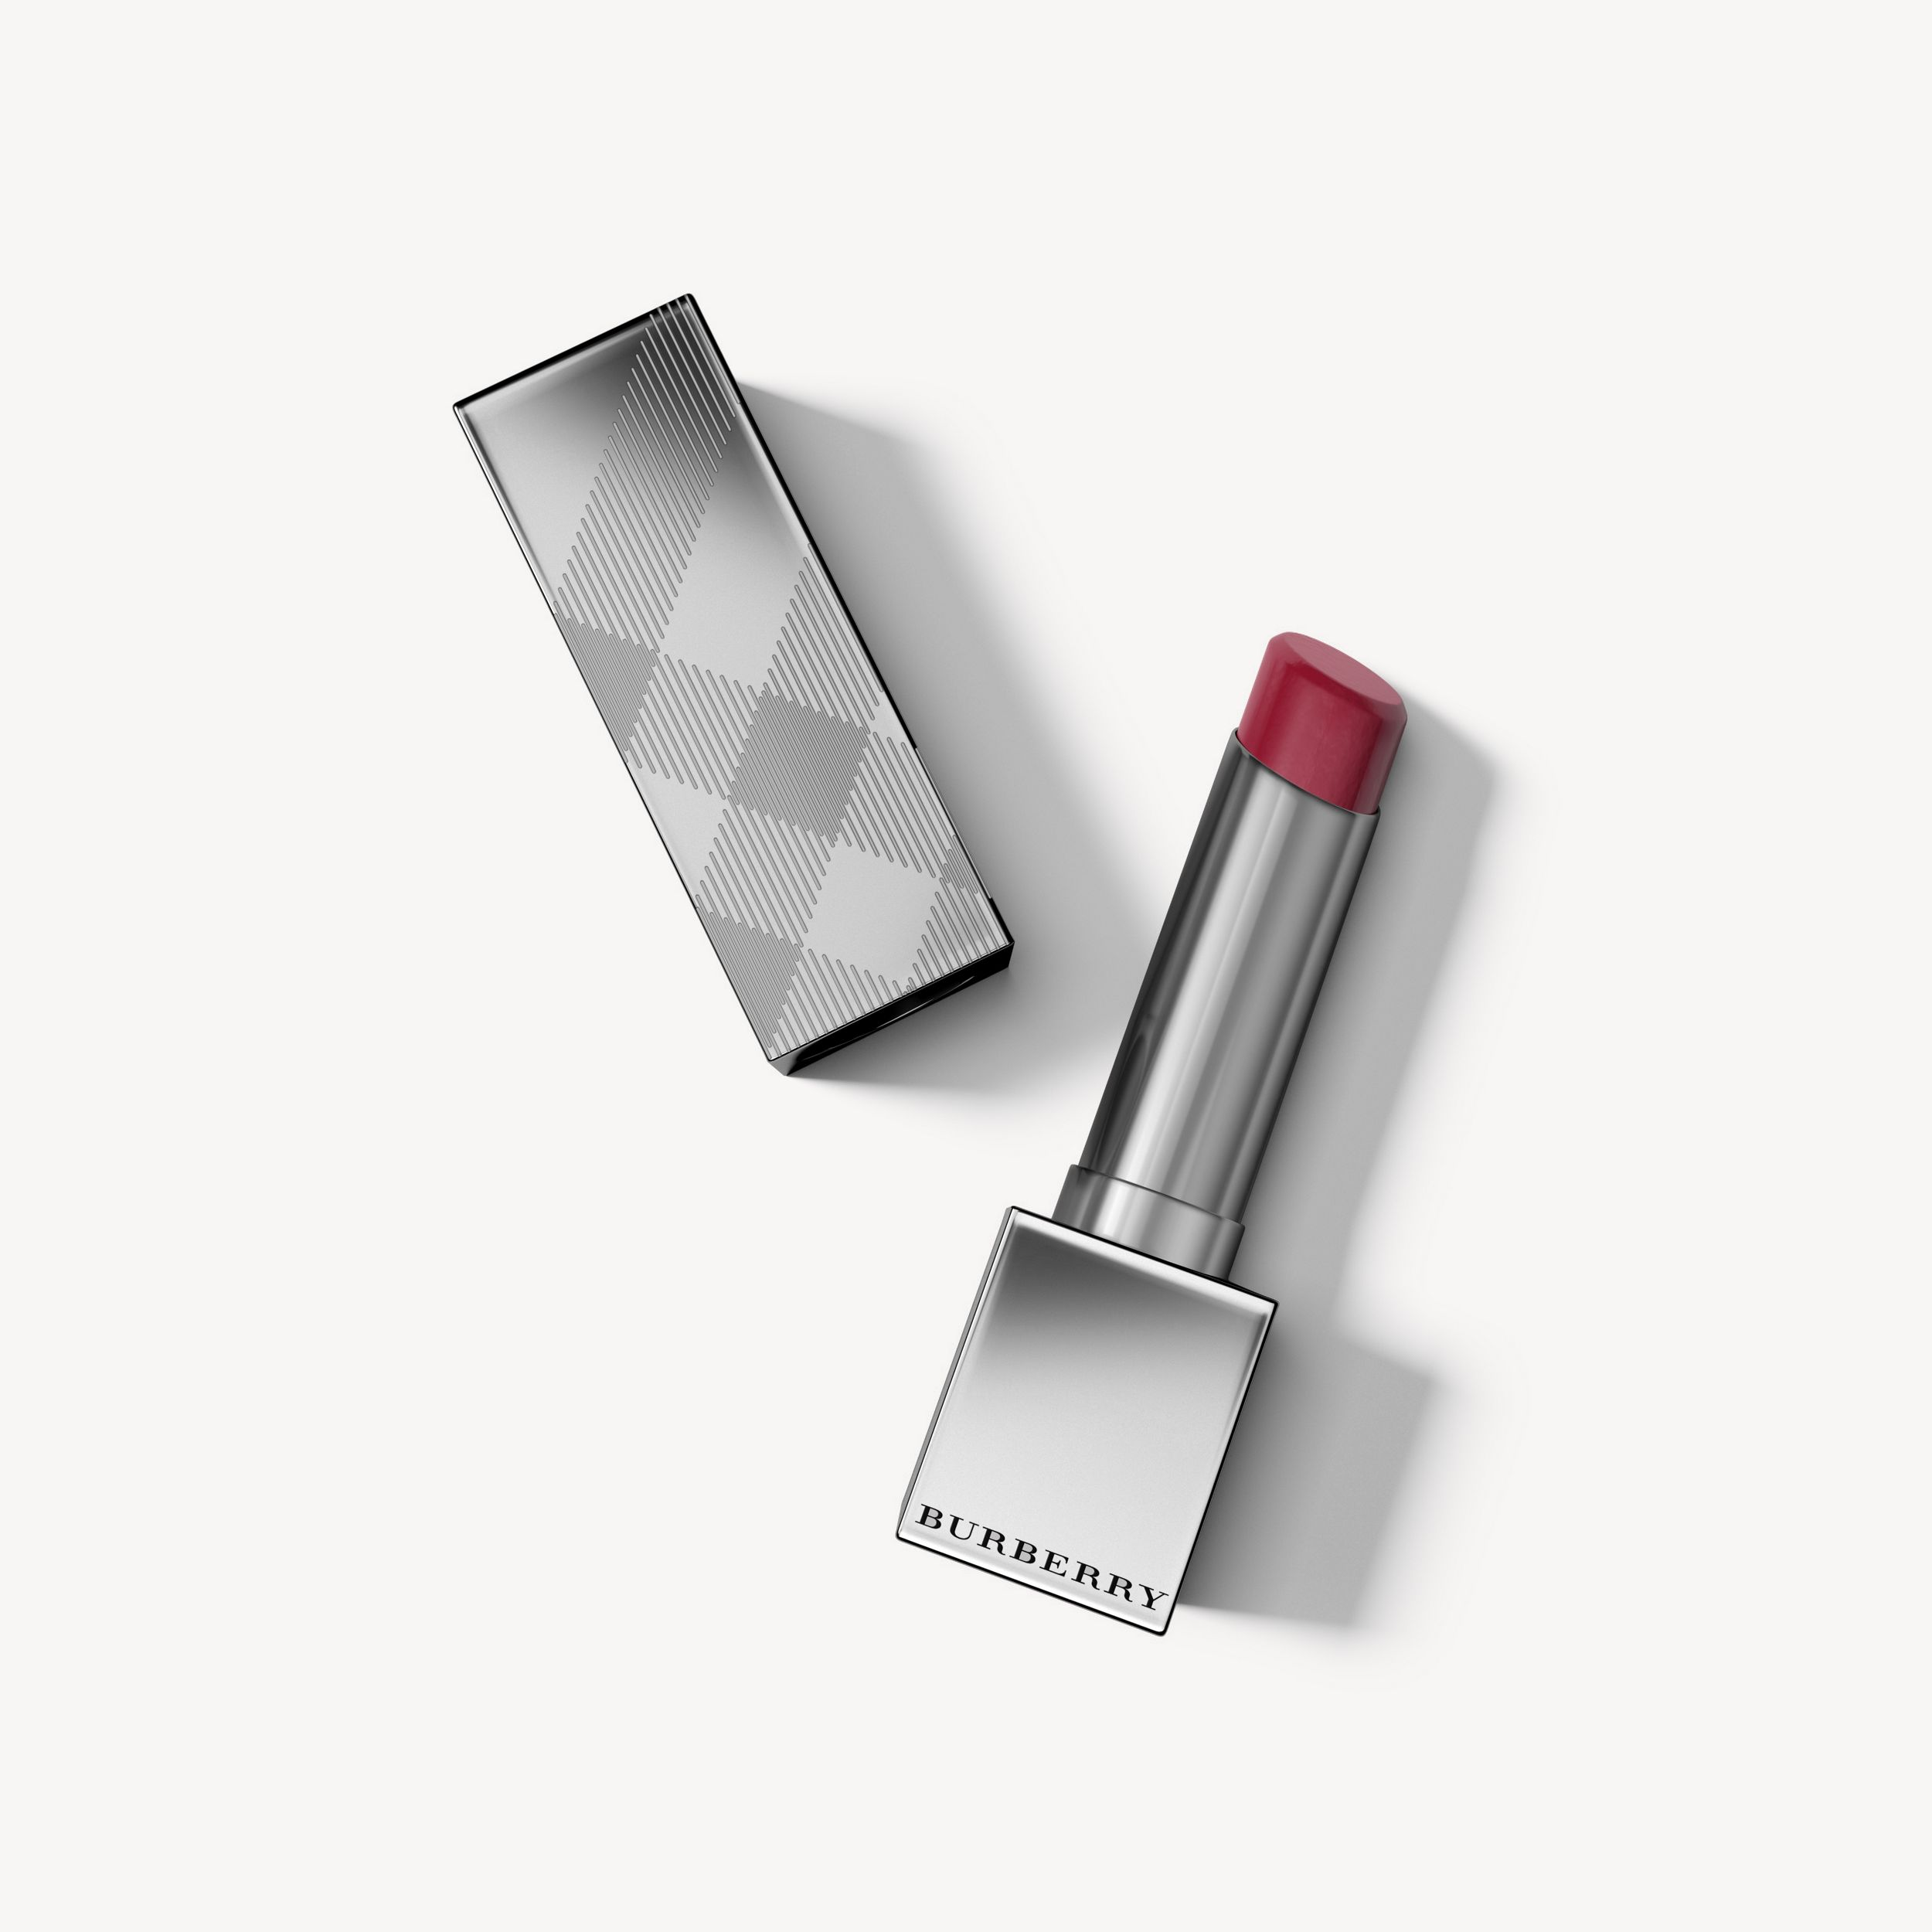 Burberry Kisses Sheer – Oxblood No.293 - Women | Burberry Canada - 1